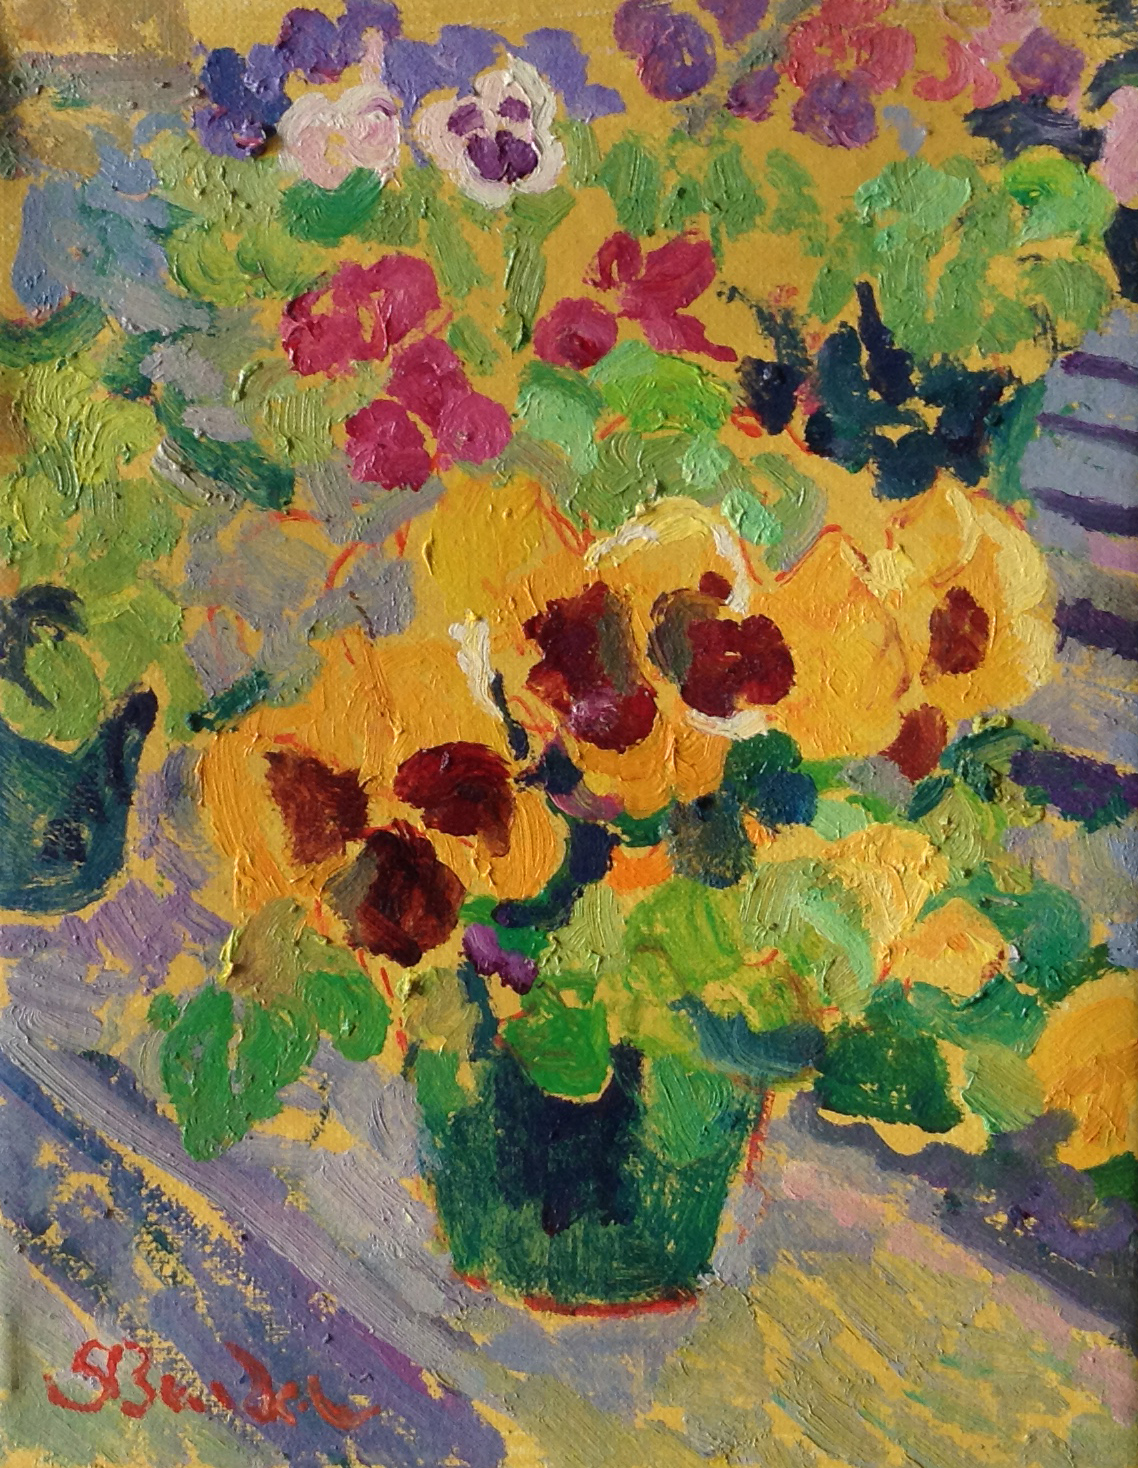 Pansies  | 8 x 10 |  Oil on canvas